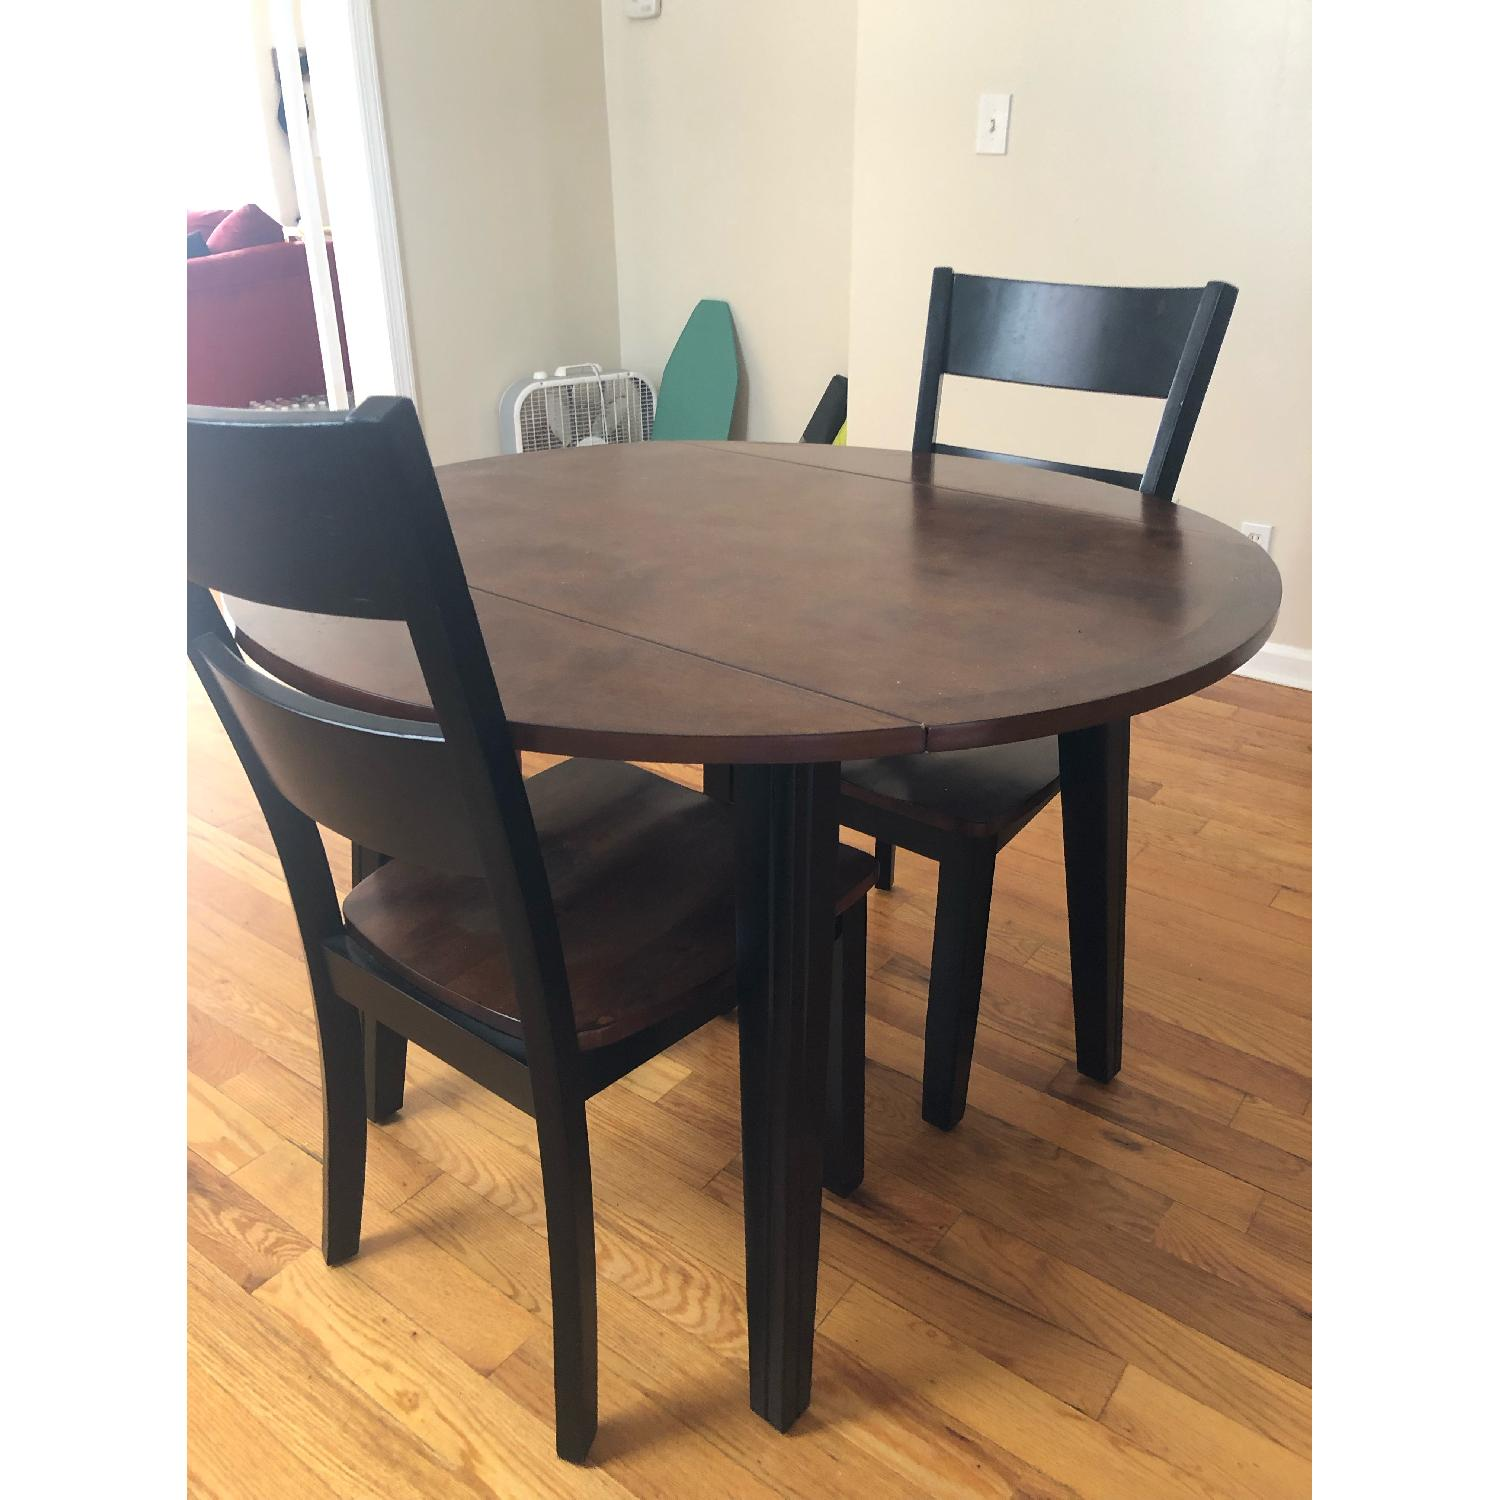 Bob's Blake 3 Piece Drop Leaf Dining Set-0